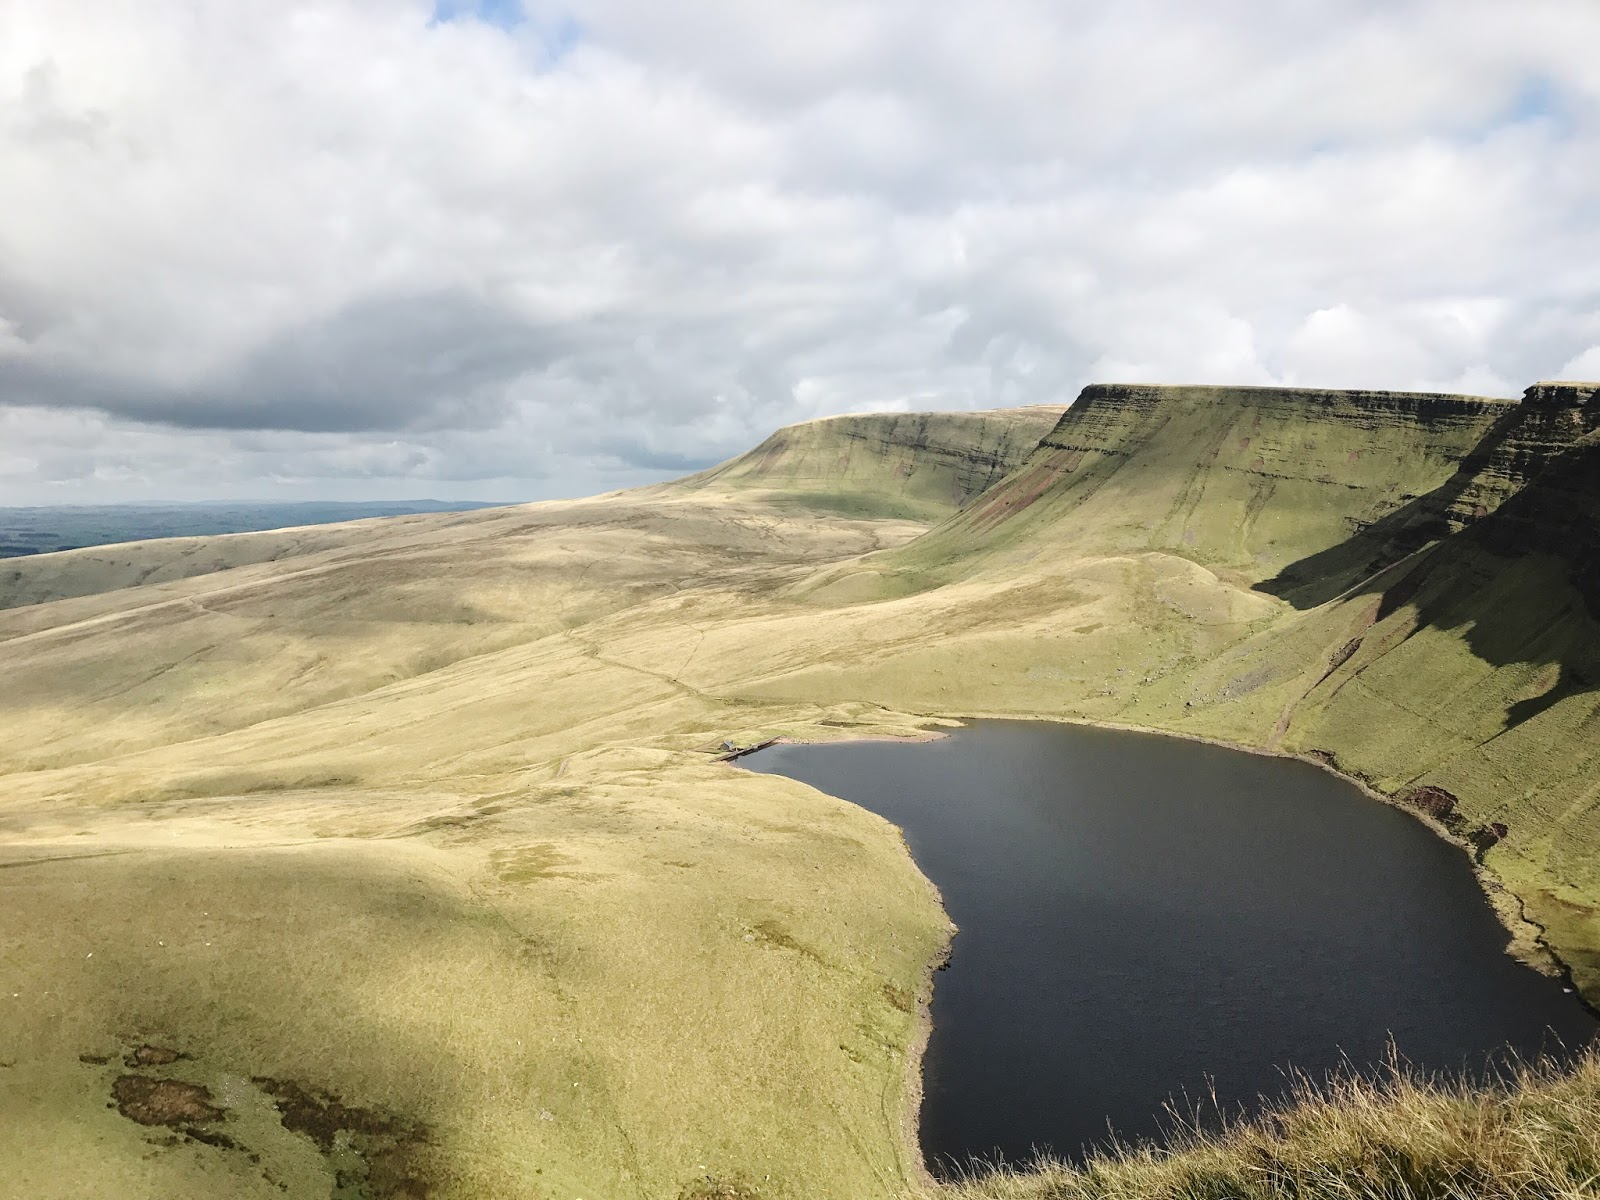 Brecon Beacons travel blog, lifestyle blog, UK travel blog, Dalry Rose Blog